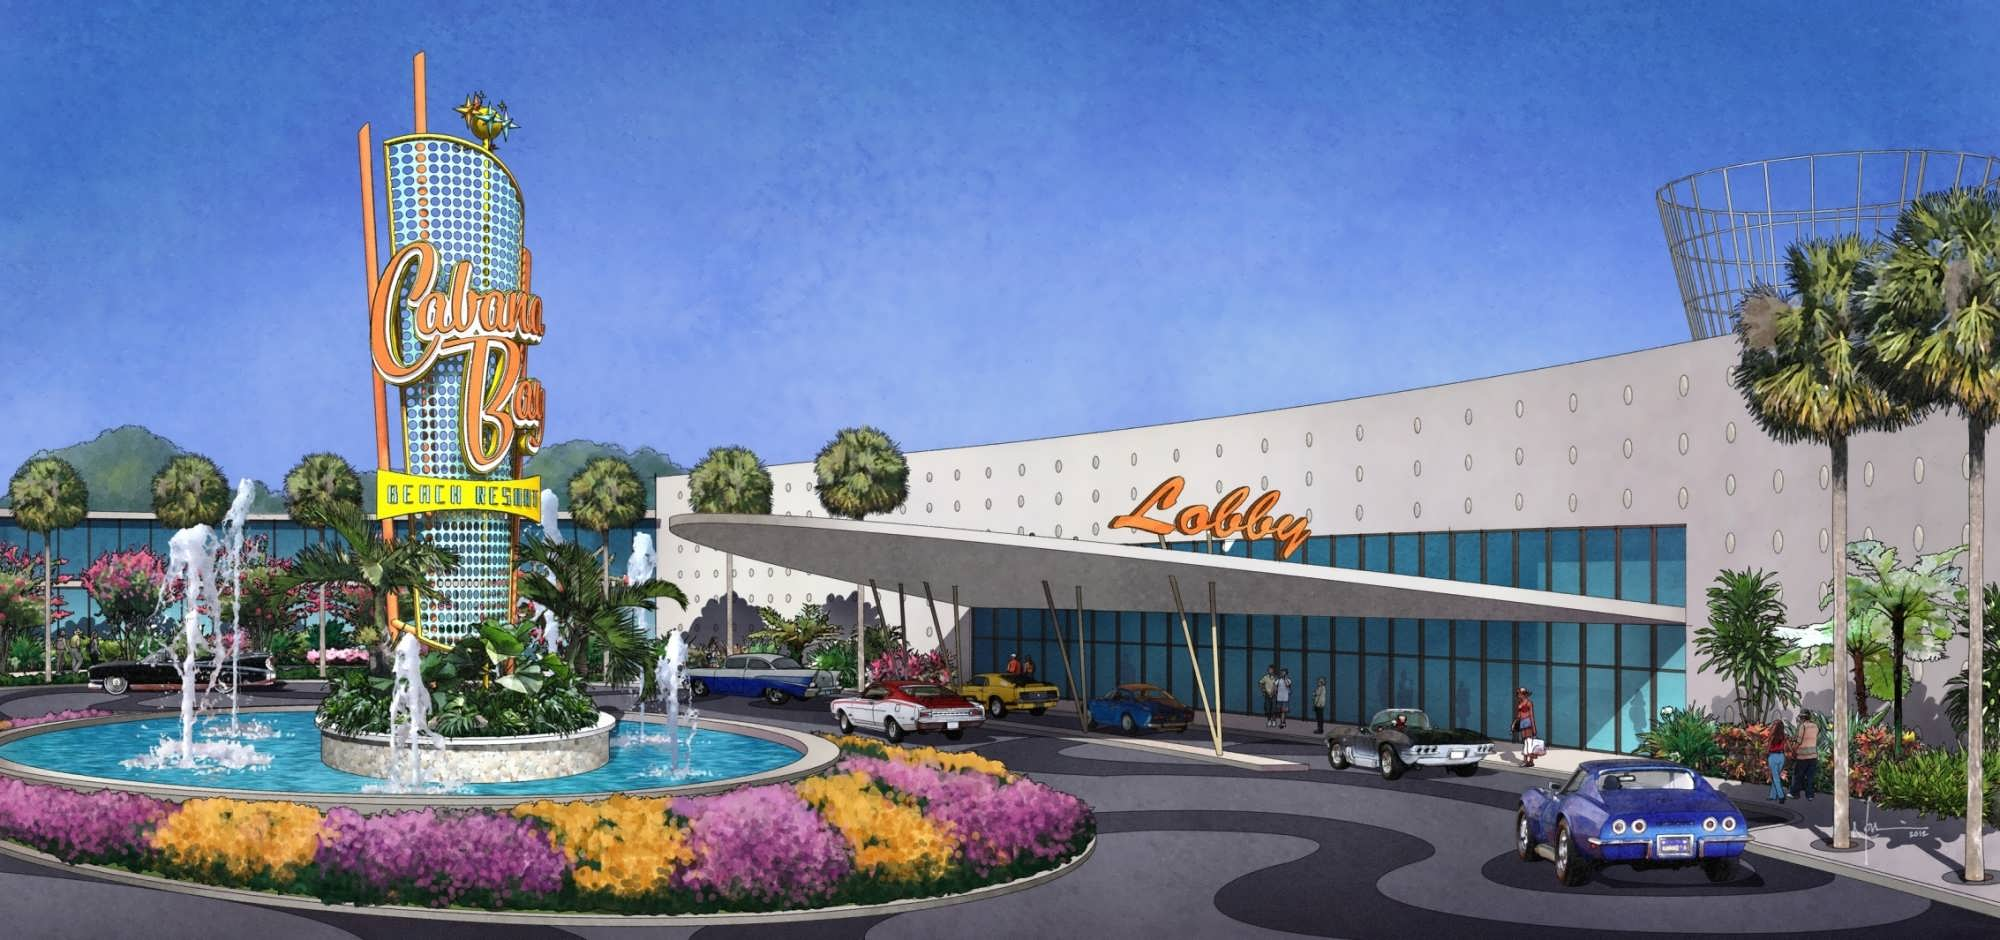 Universal Orlando S Cabana Bay Beach Resort Opens In 2017